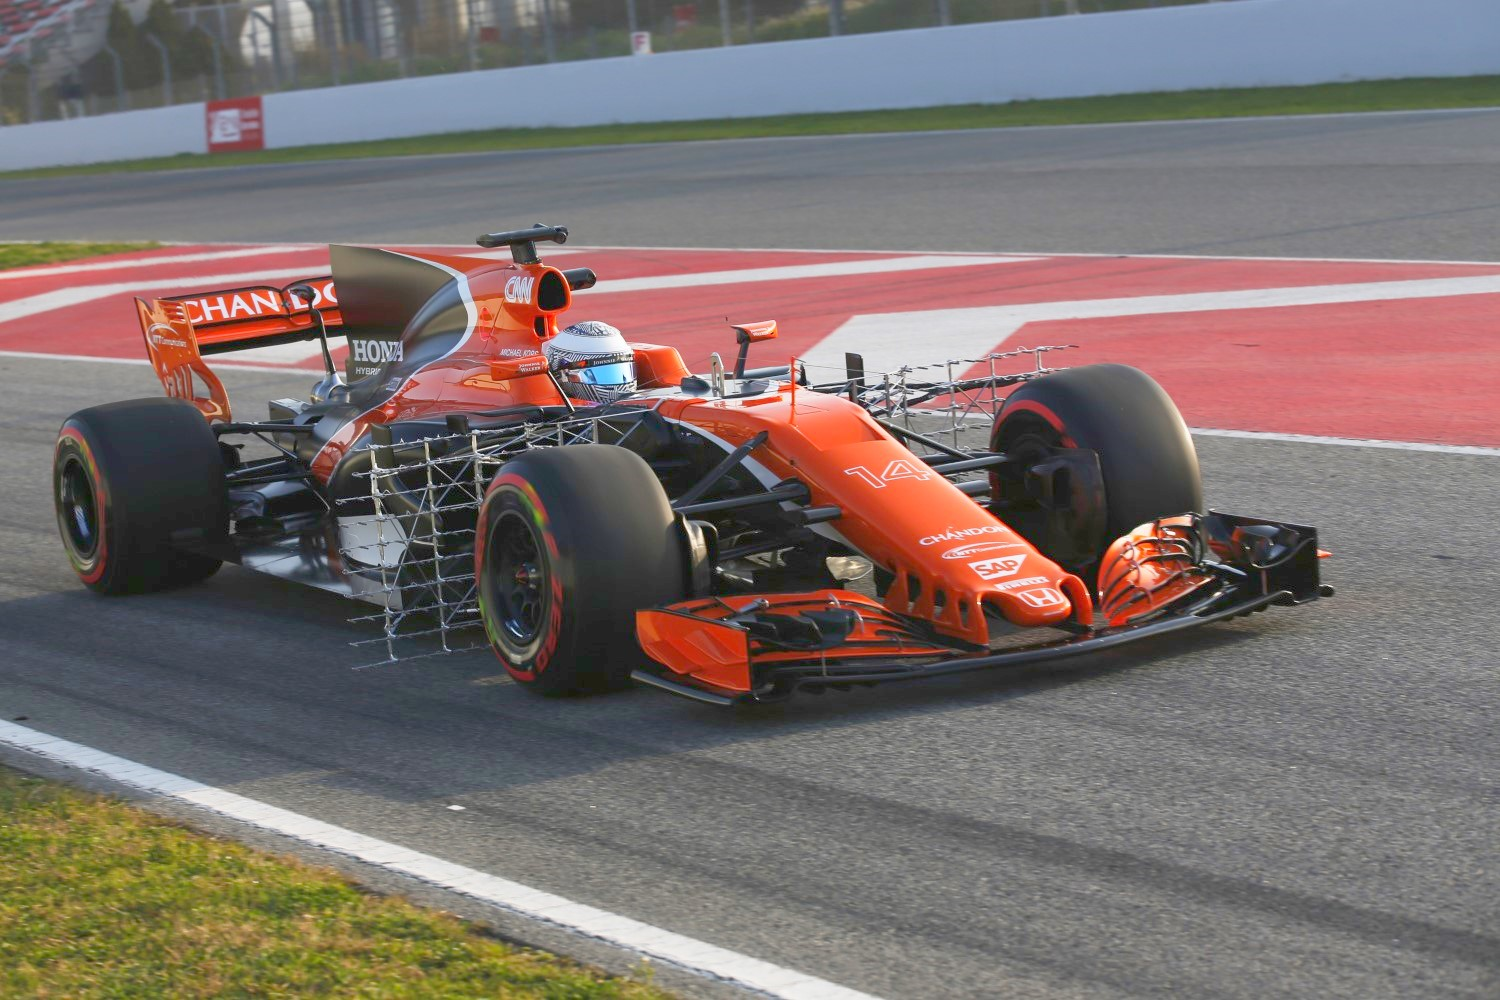 Alonso in the restless McLaren